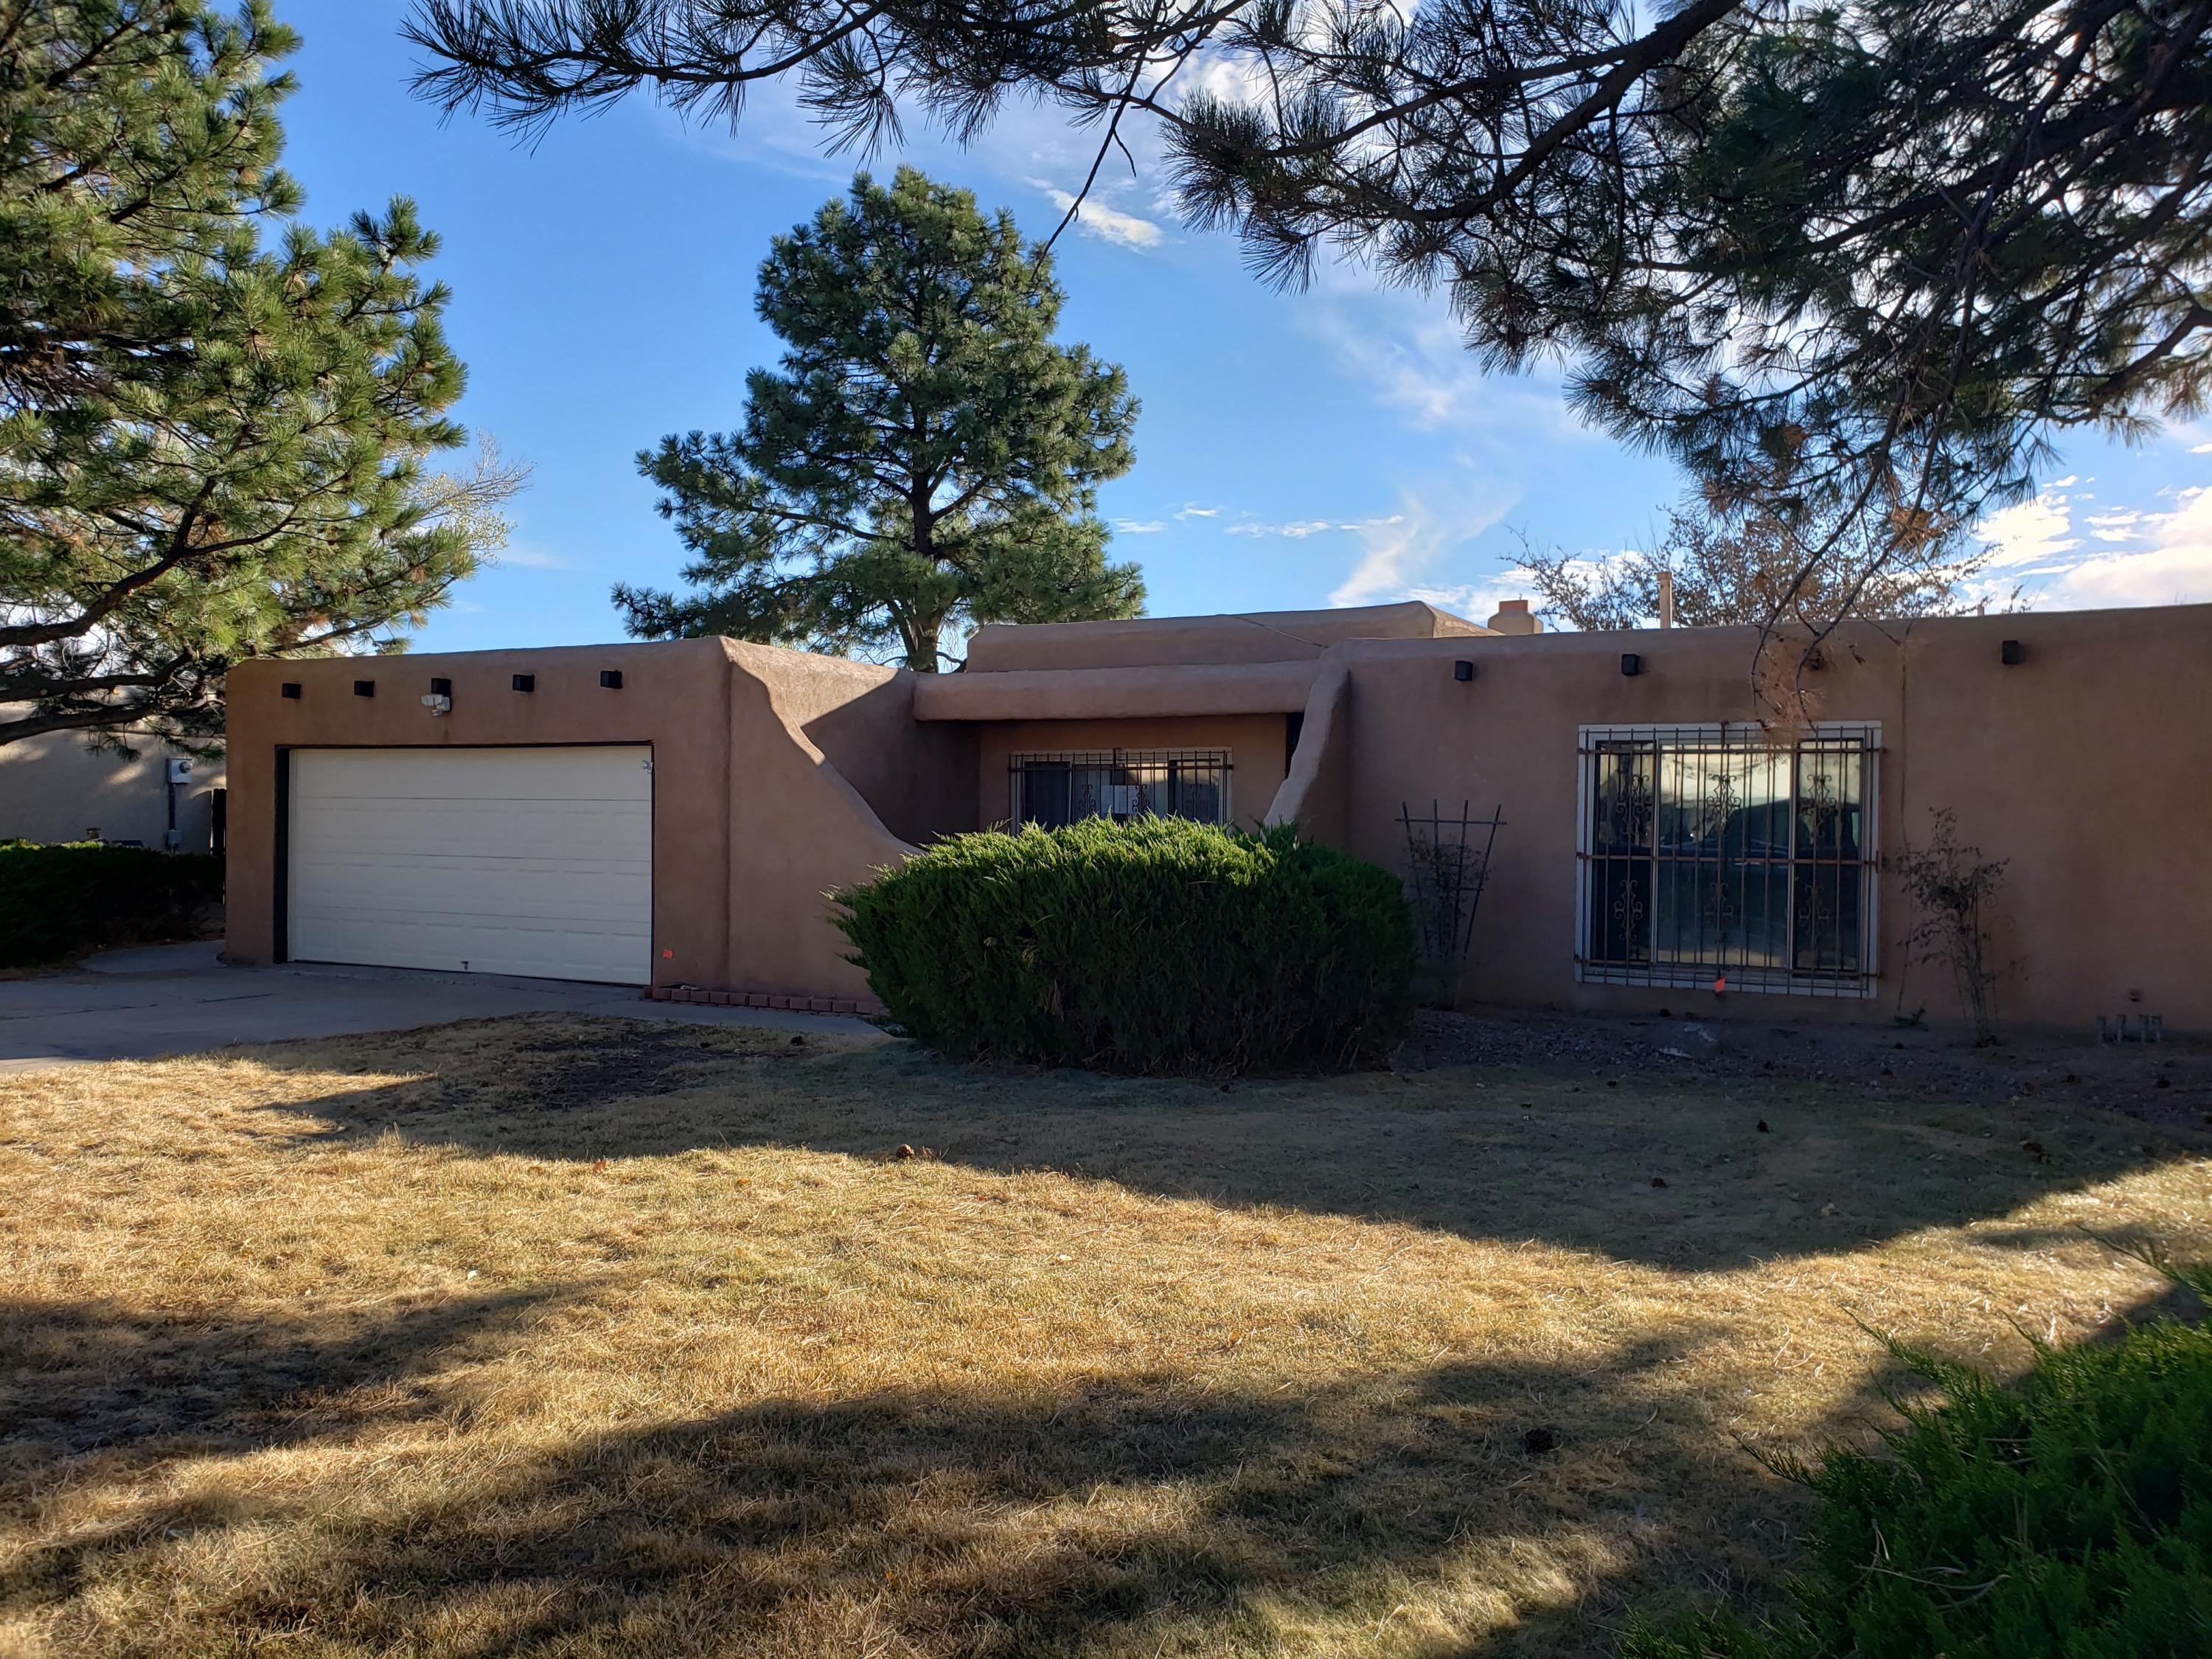 Just Listed! This 1-story home features a 4 bedroom 1.75 bath floorplan, 2 living areas, wood burning fireplace, covered patio and an  attached 2 car garage. Home is eligible for $100 Down Payment Program when using FHA 203B or FHA 203K financing.